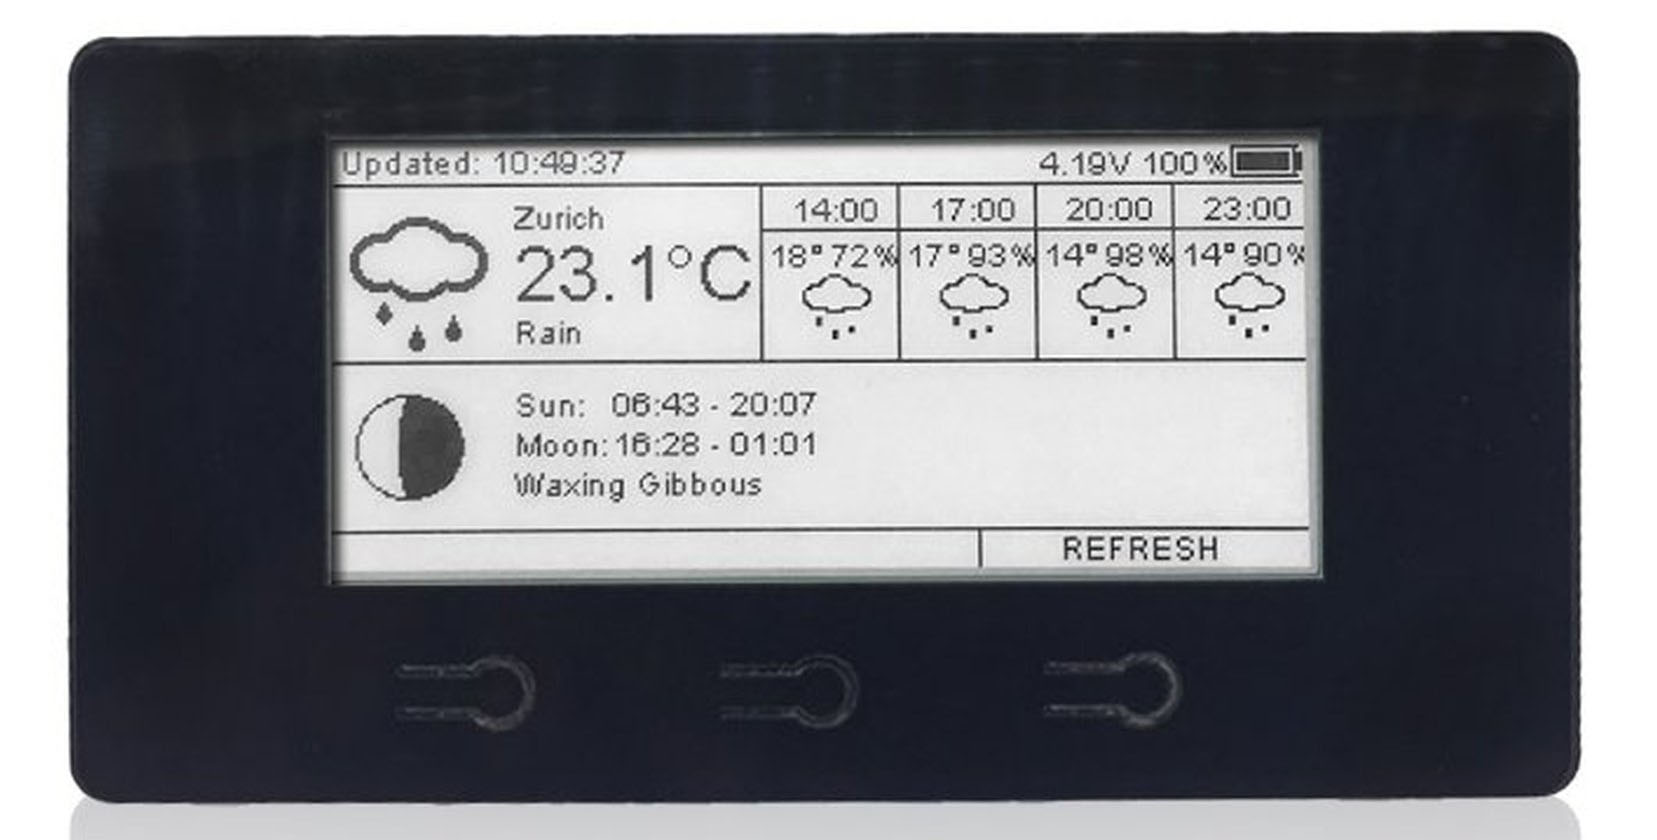 ESP8266 ePaper WiFi Display Kit Runs for Months on a Charge